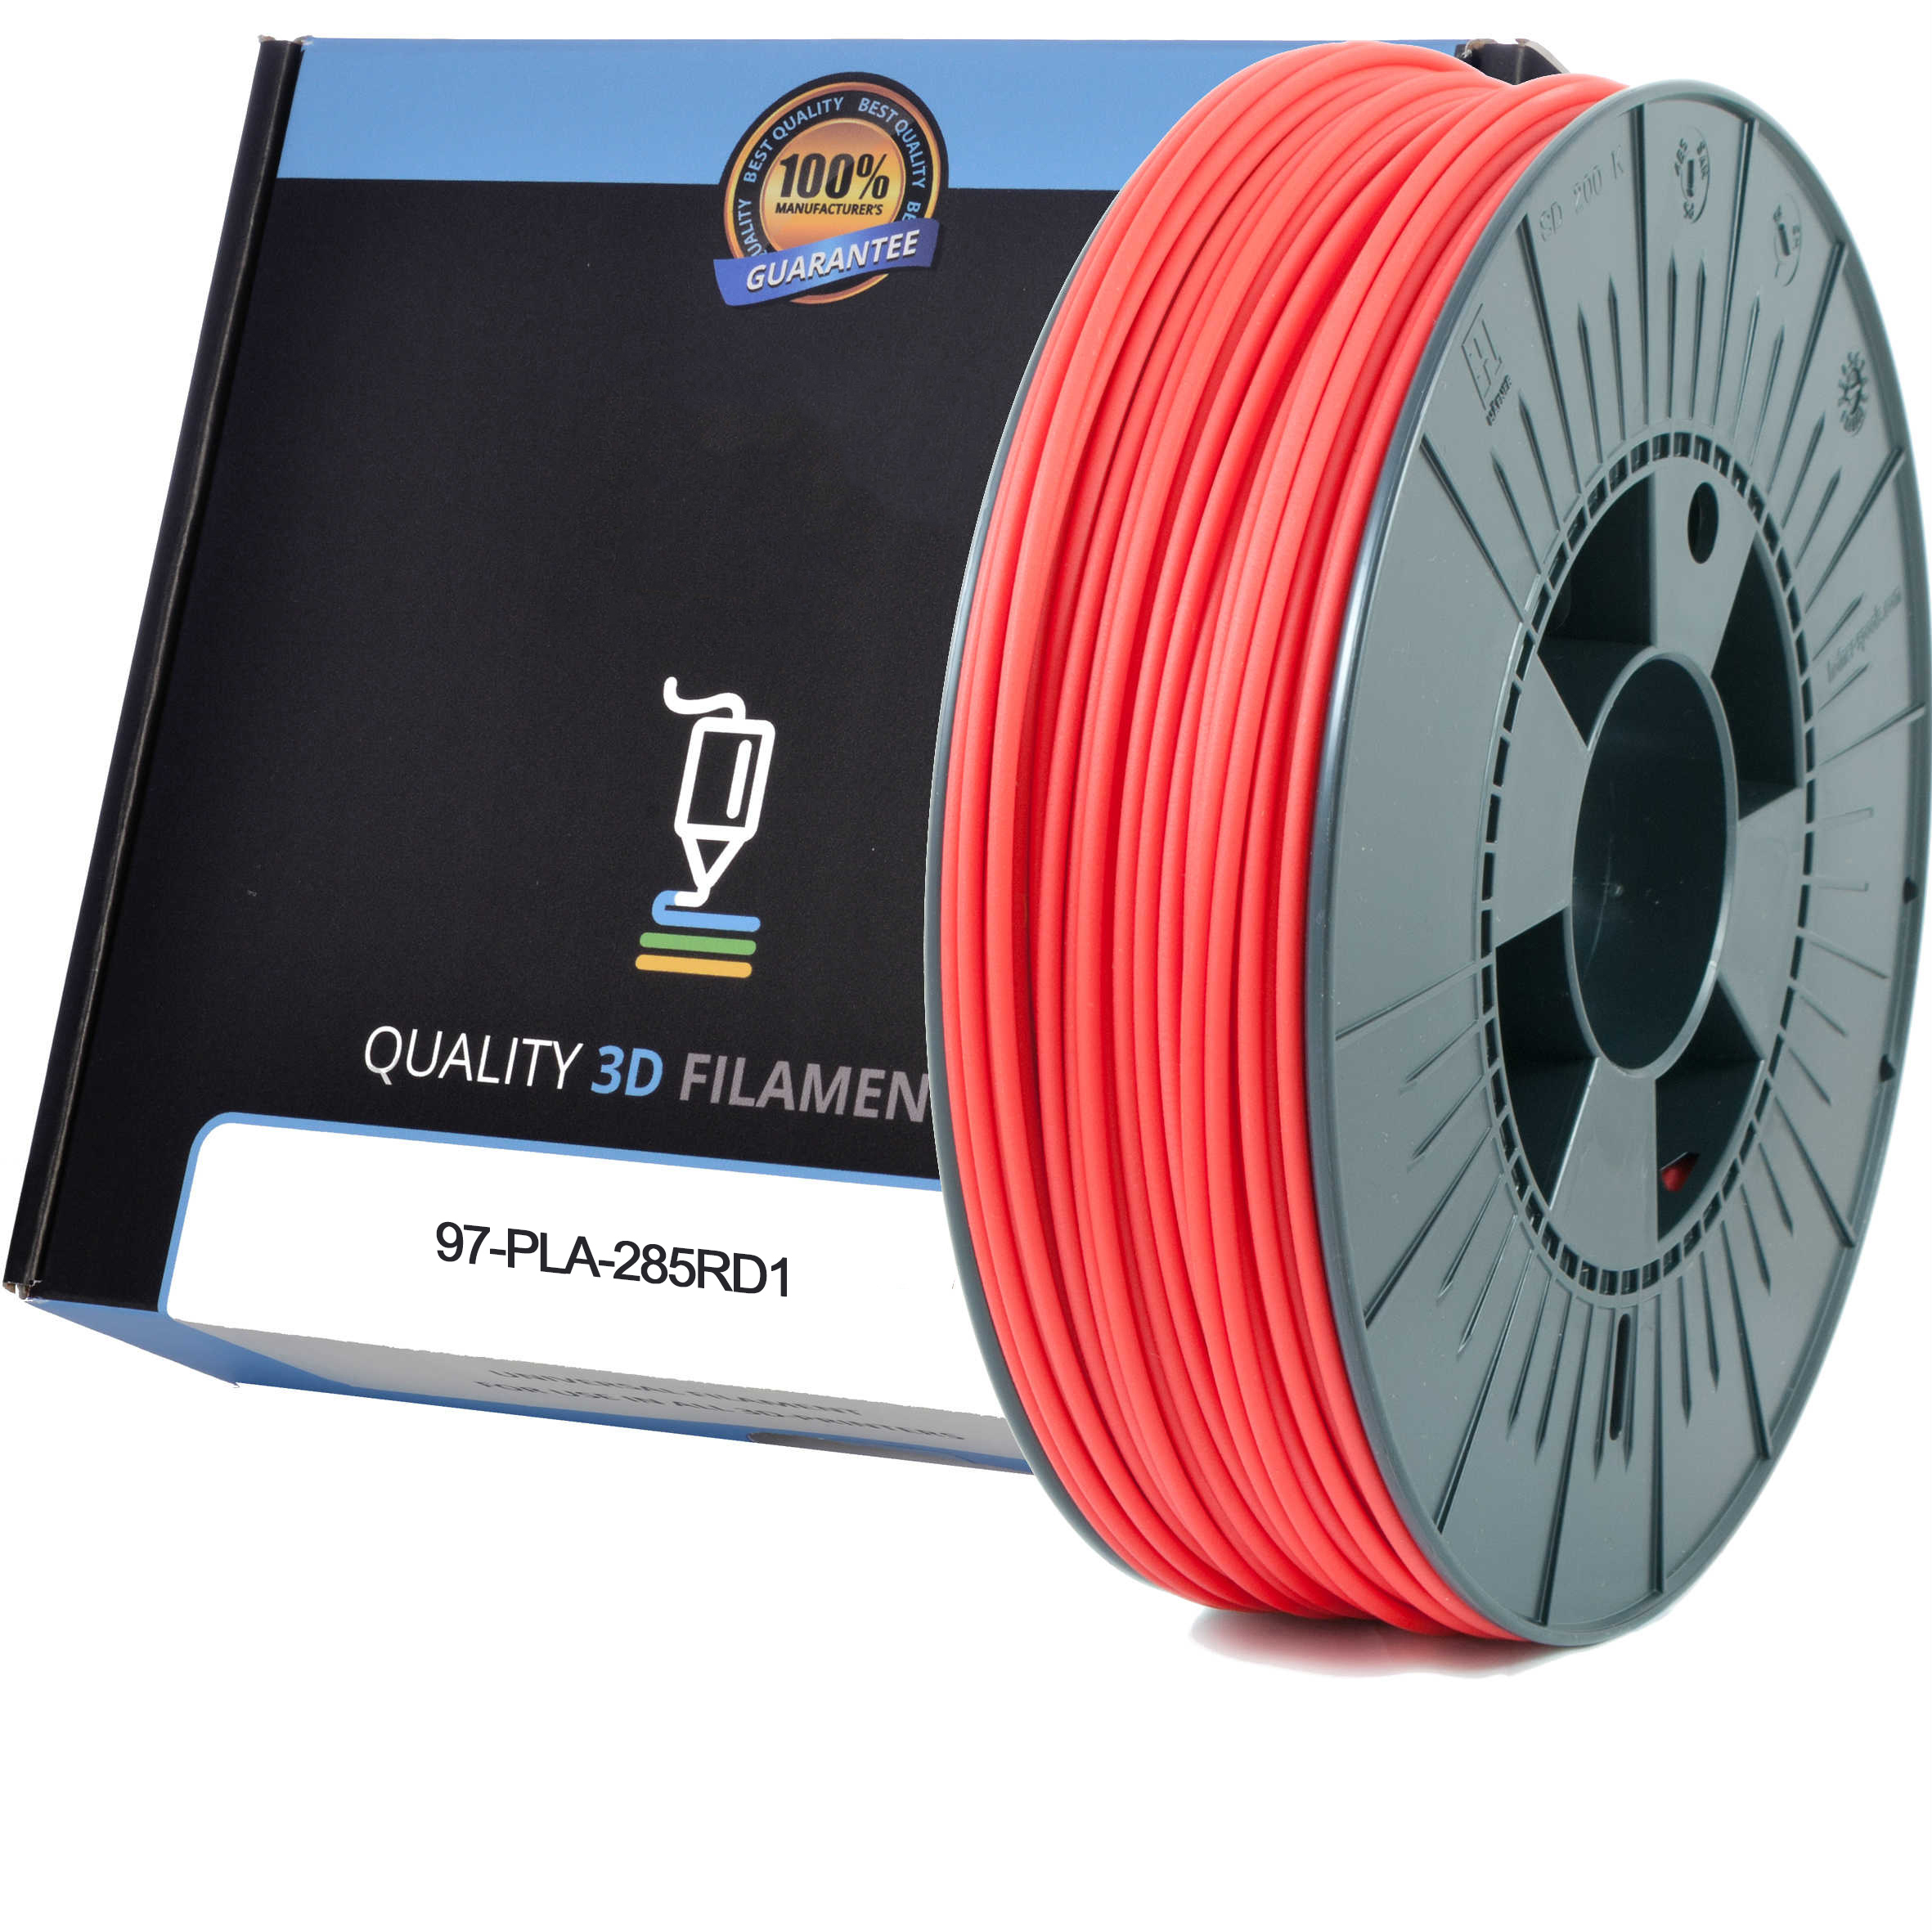 Premium Compatible PLA 2.85mm Red 1kg 3D Filament (97-PLA-285RD1)